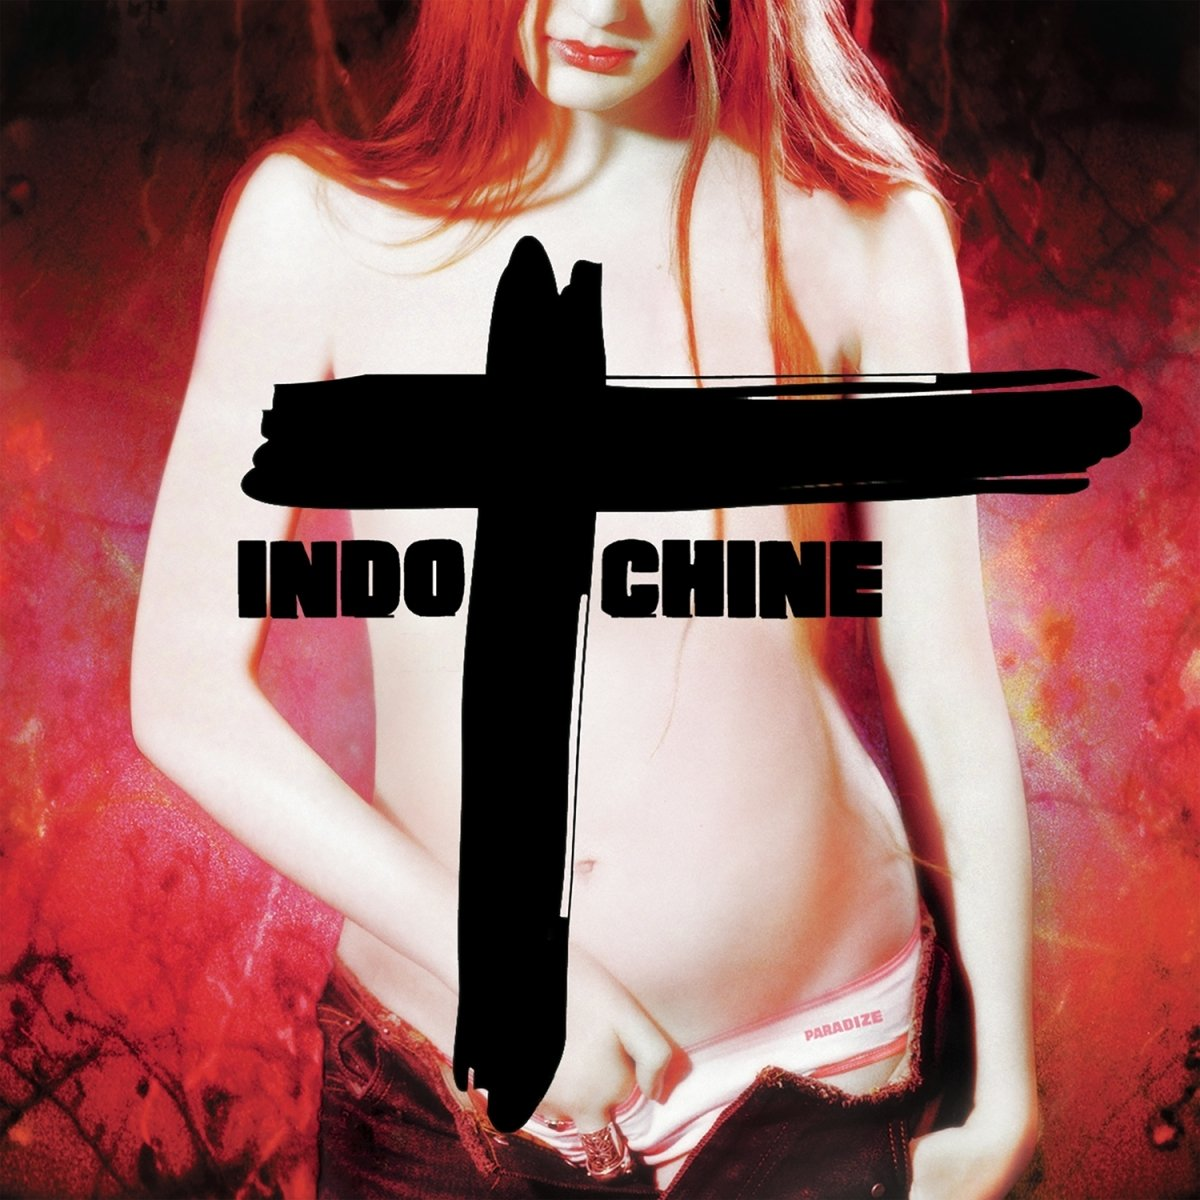 Indochine Album croix